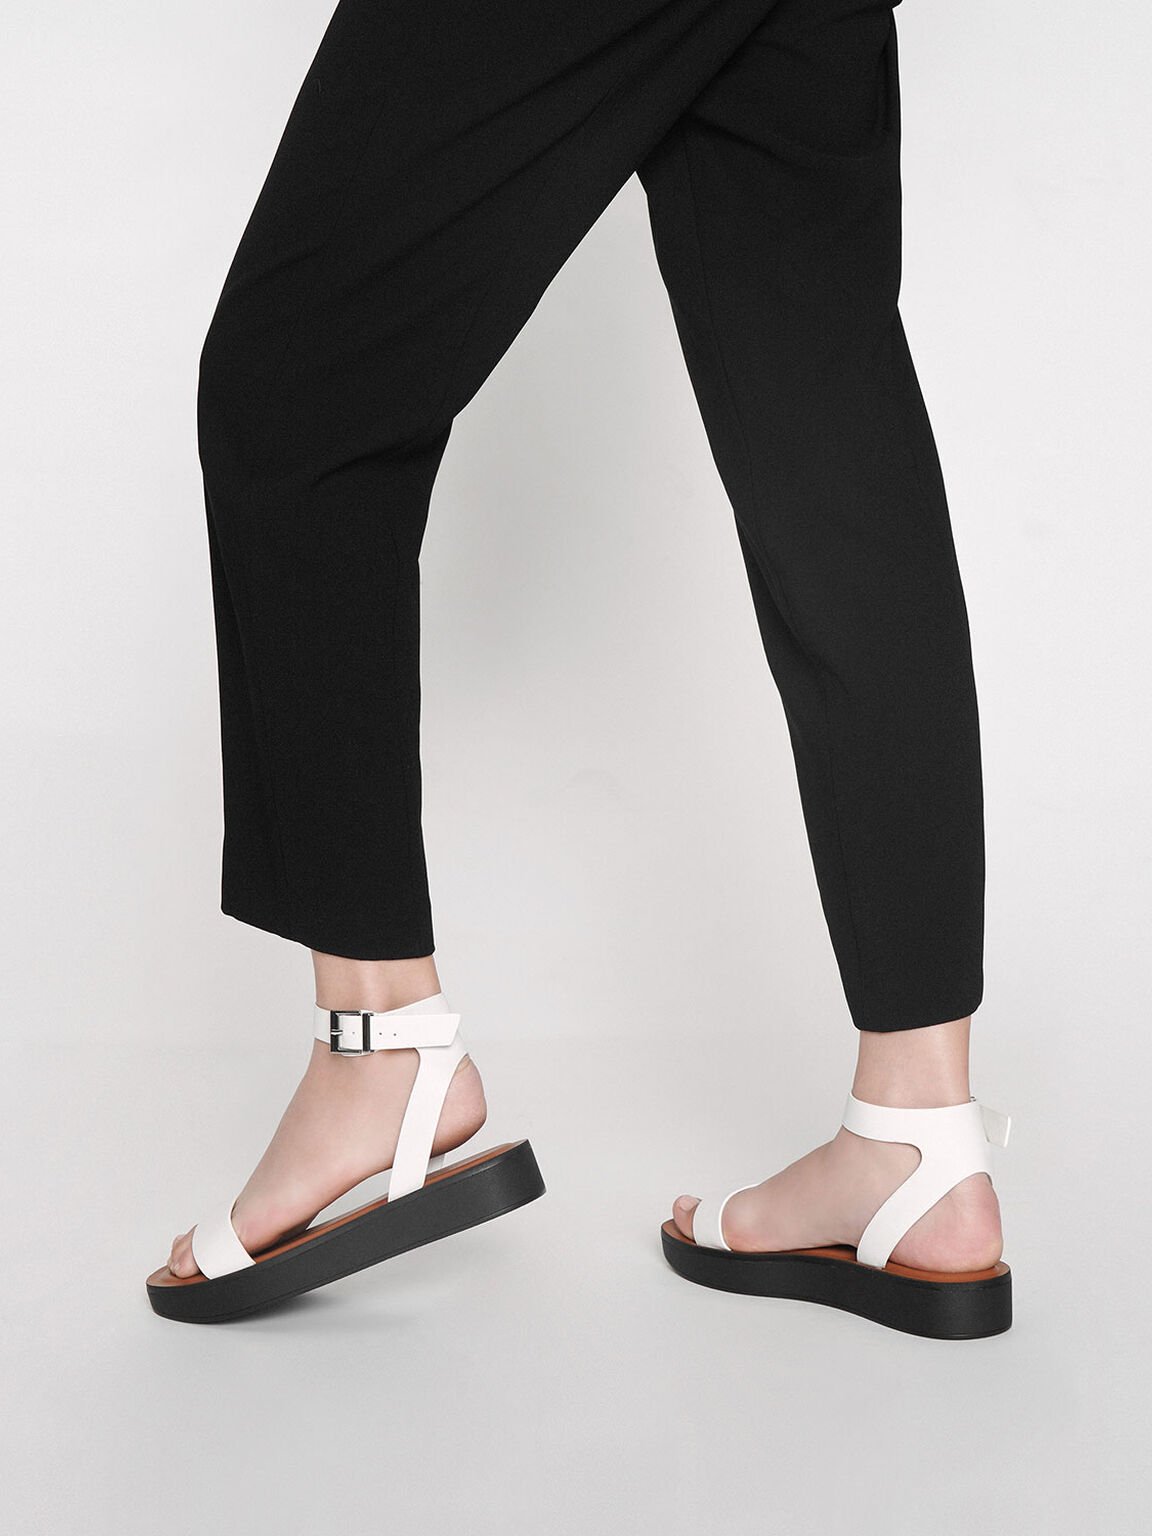 Ankle Strap Platform Sandals, White, hi-res